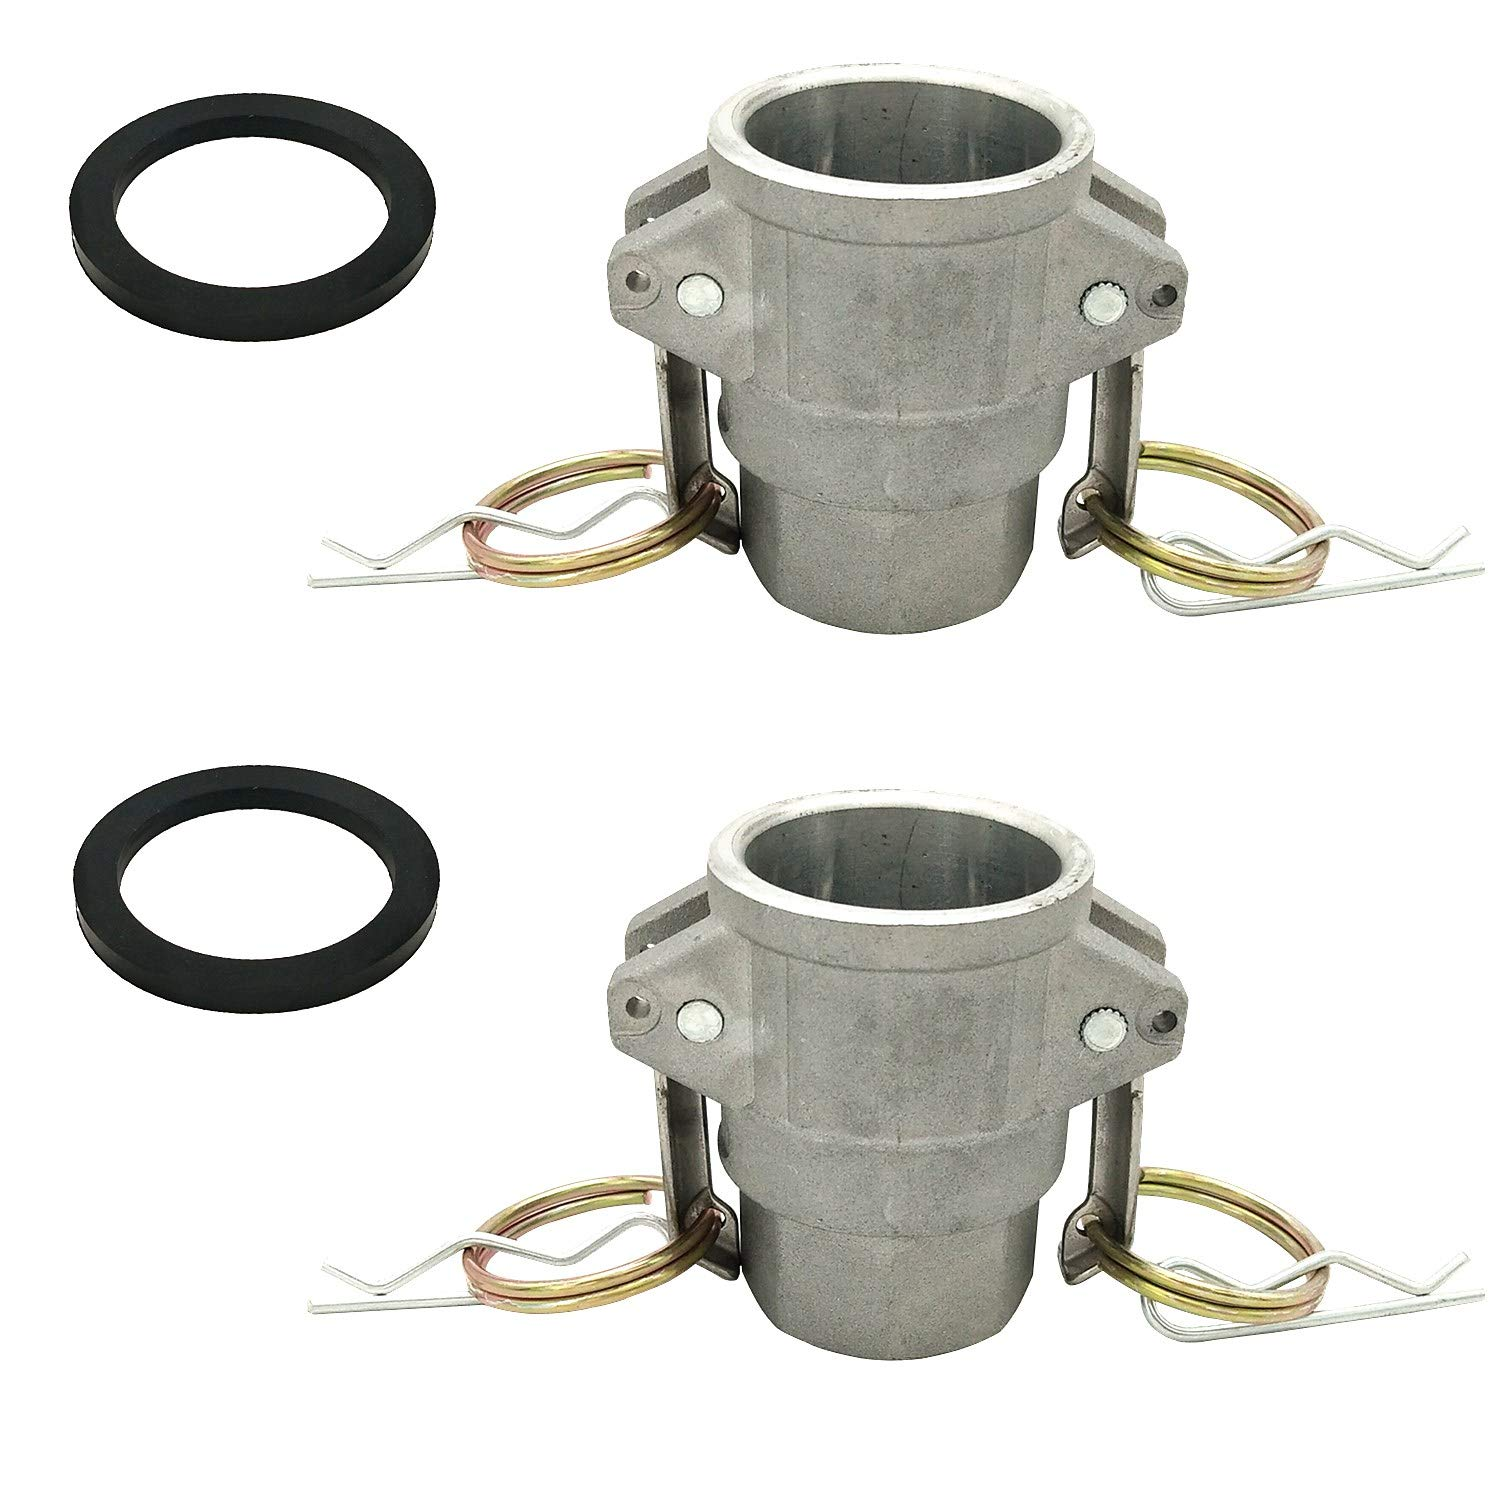 """4/"""" 2PCS Aluminum Type D Cam and Groove Fitting,4 Female Coupler x 4 Female NPT with 2PCS Camlock Gasket Fitting"""